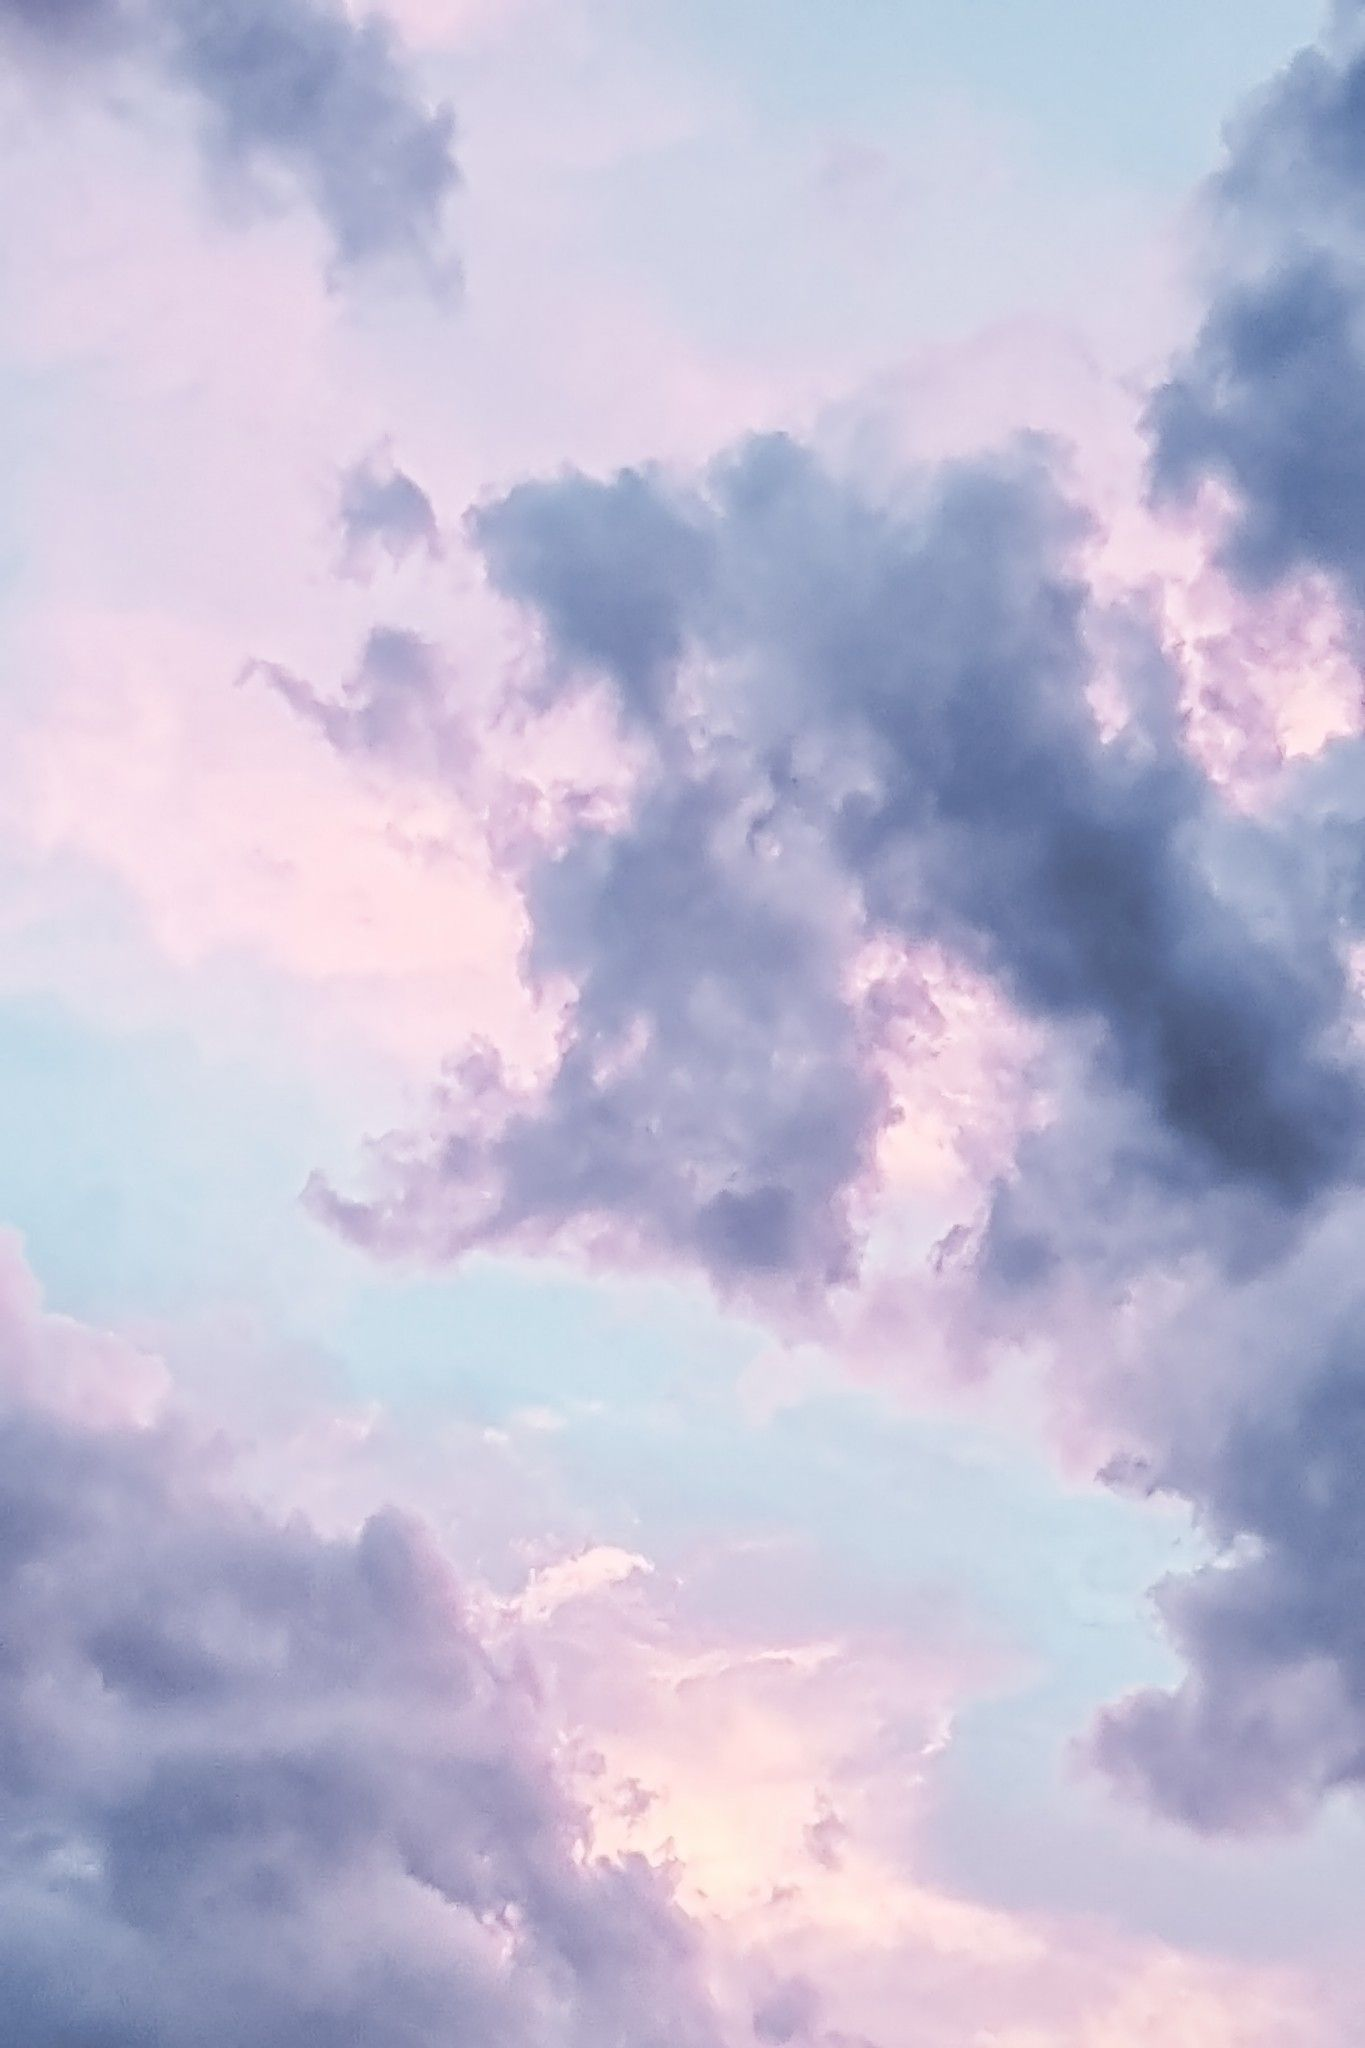 Pin By Jeanqueen On Tinker Room In 2020 With Images Iphone Wallpaper Sky Pastel Sky Pastel Aesthetic